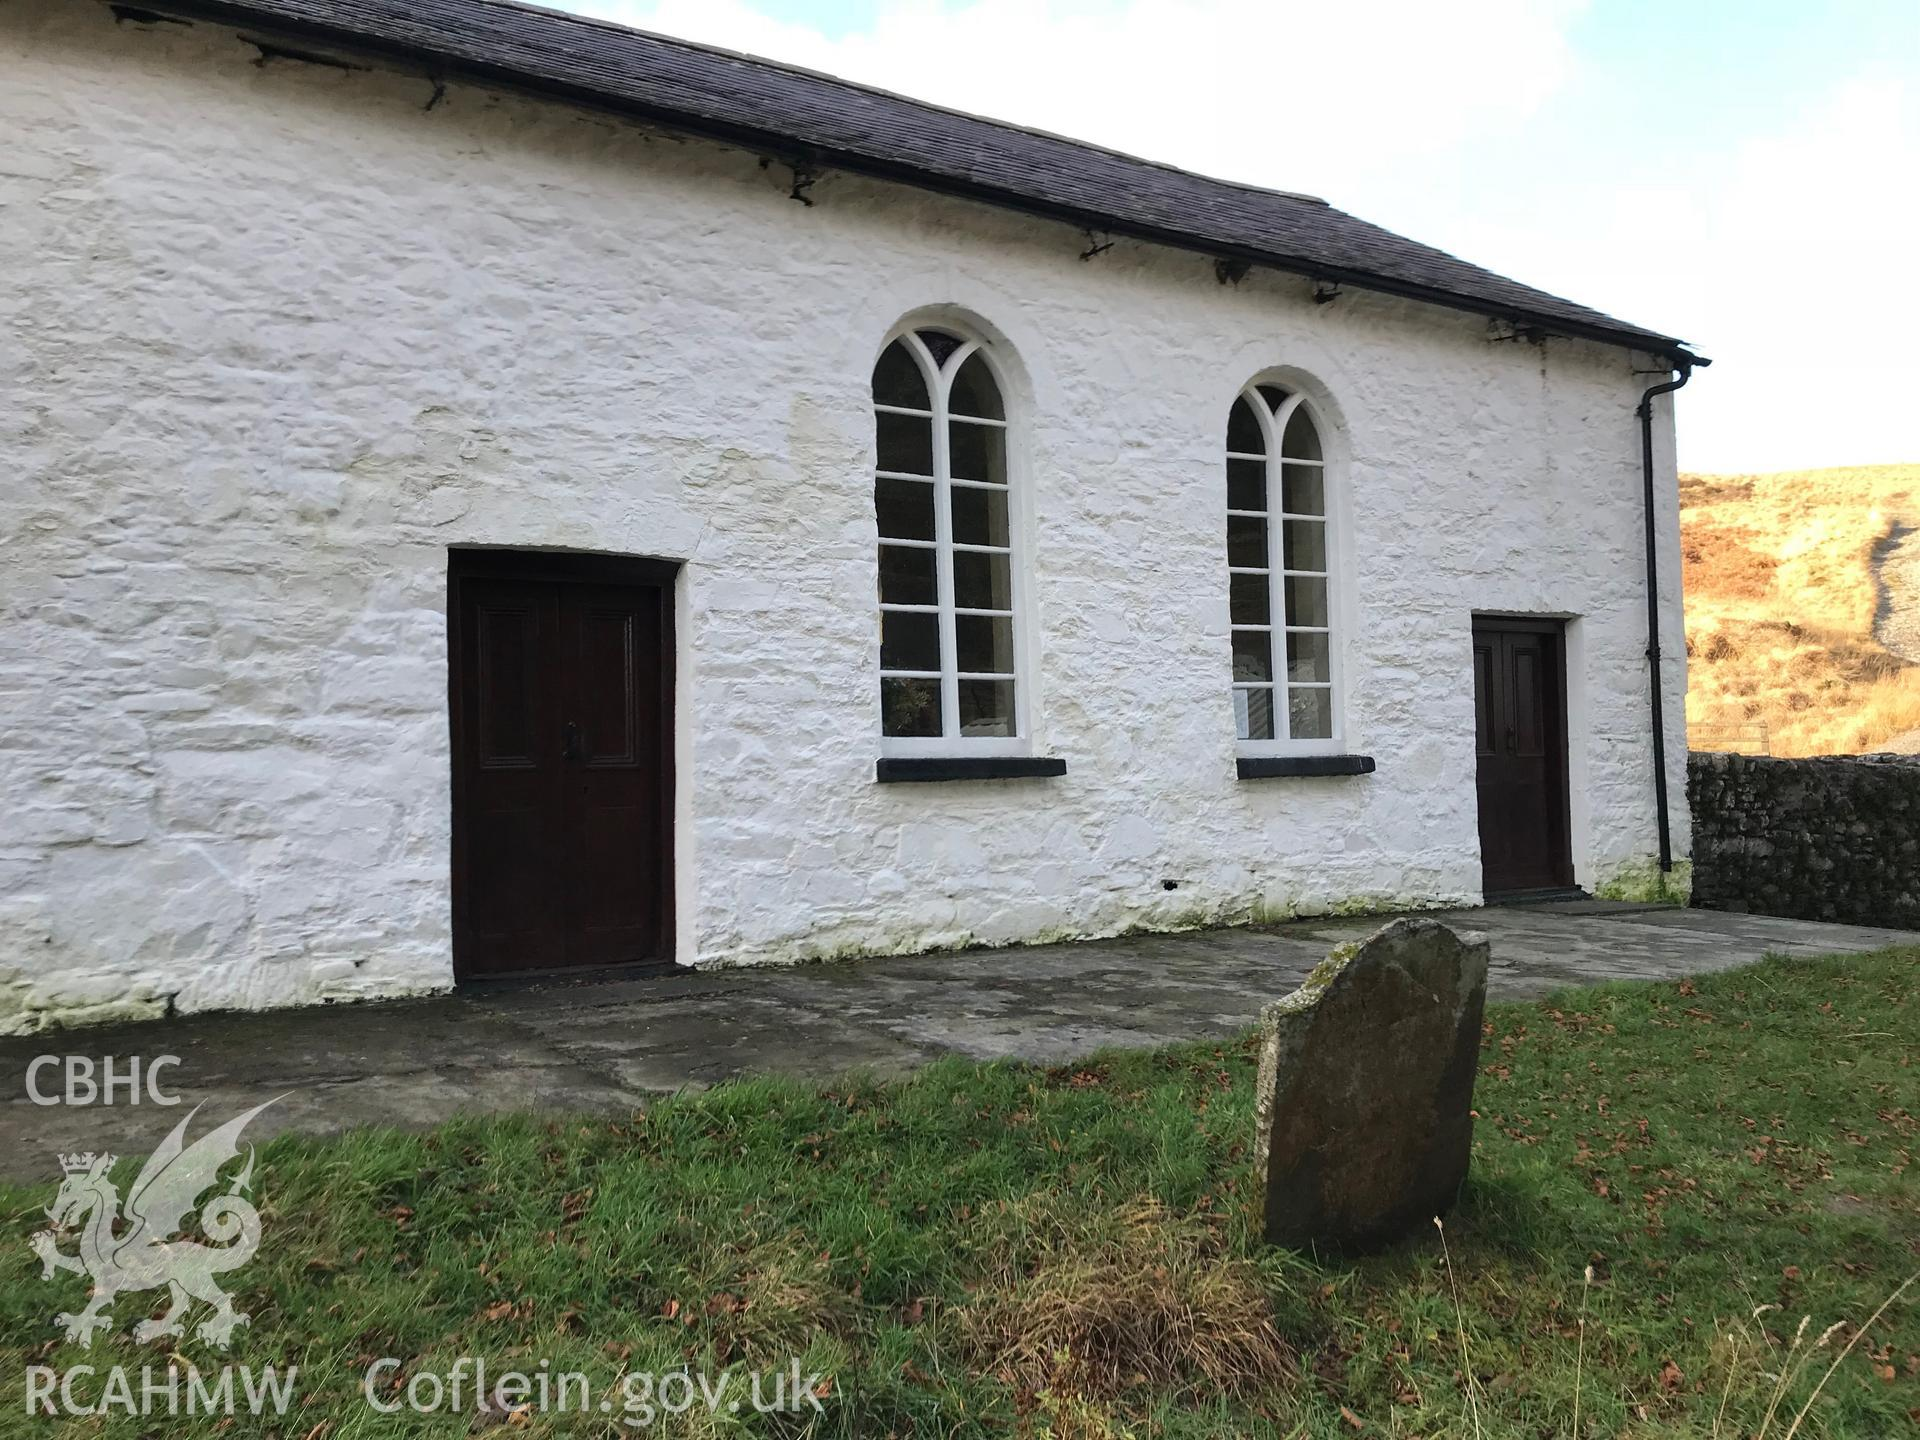 Exterior view showing side elevation of Soar-y-Mynydd Welsh Calvinistic Methodist chapel, Llanddewi Brefi. Colour photograph taken by Paul R. Davis on 17th November 2018.